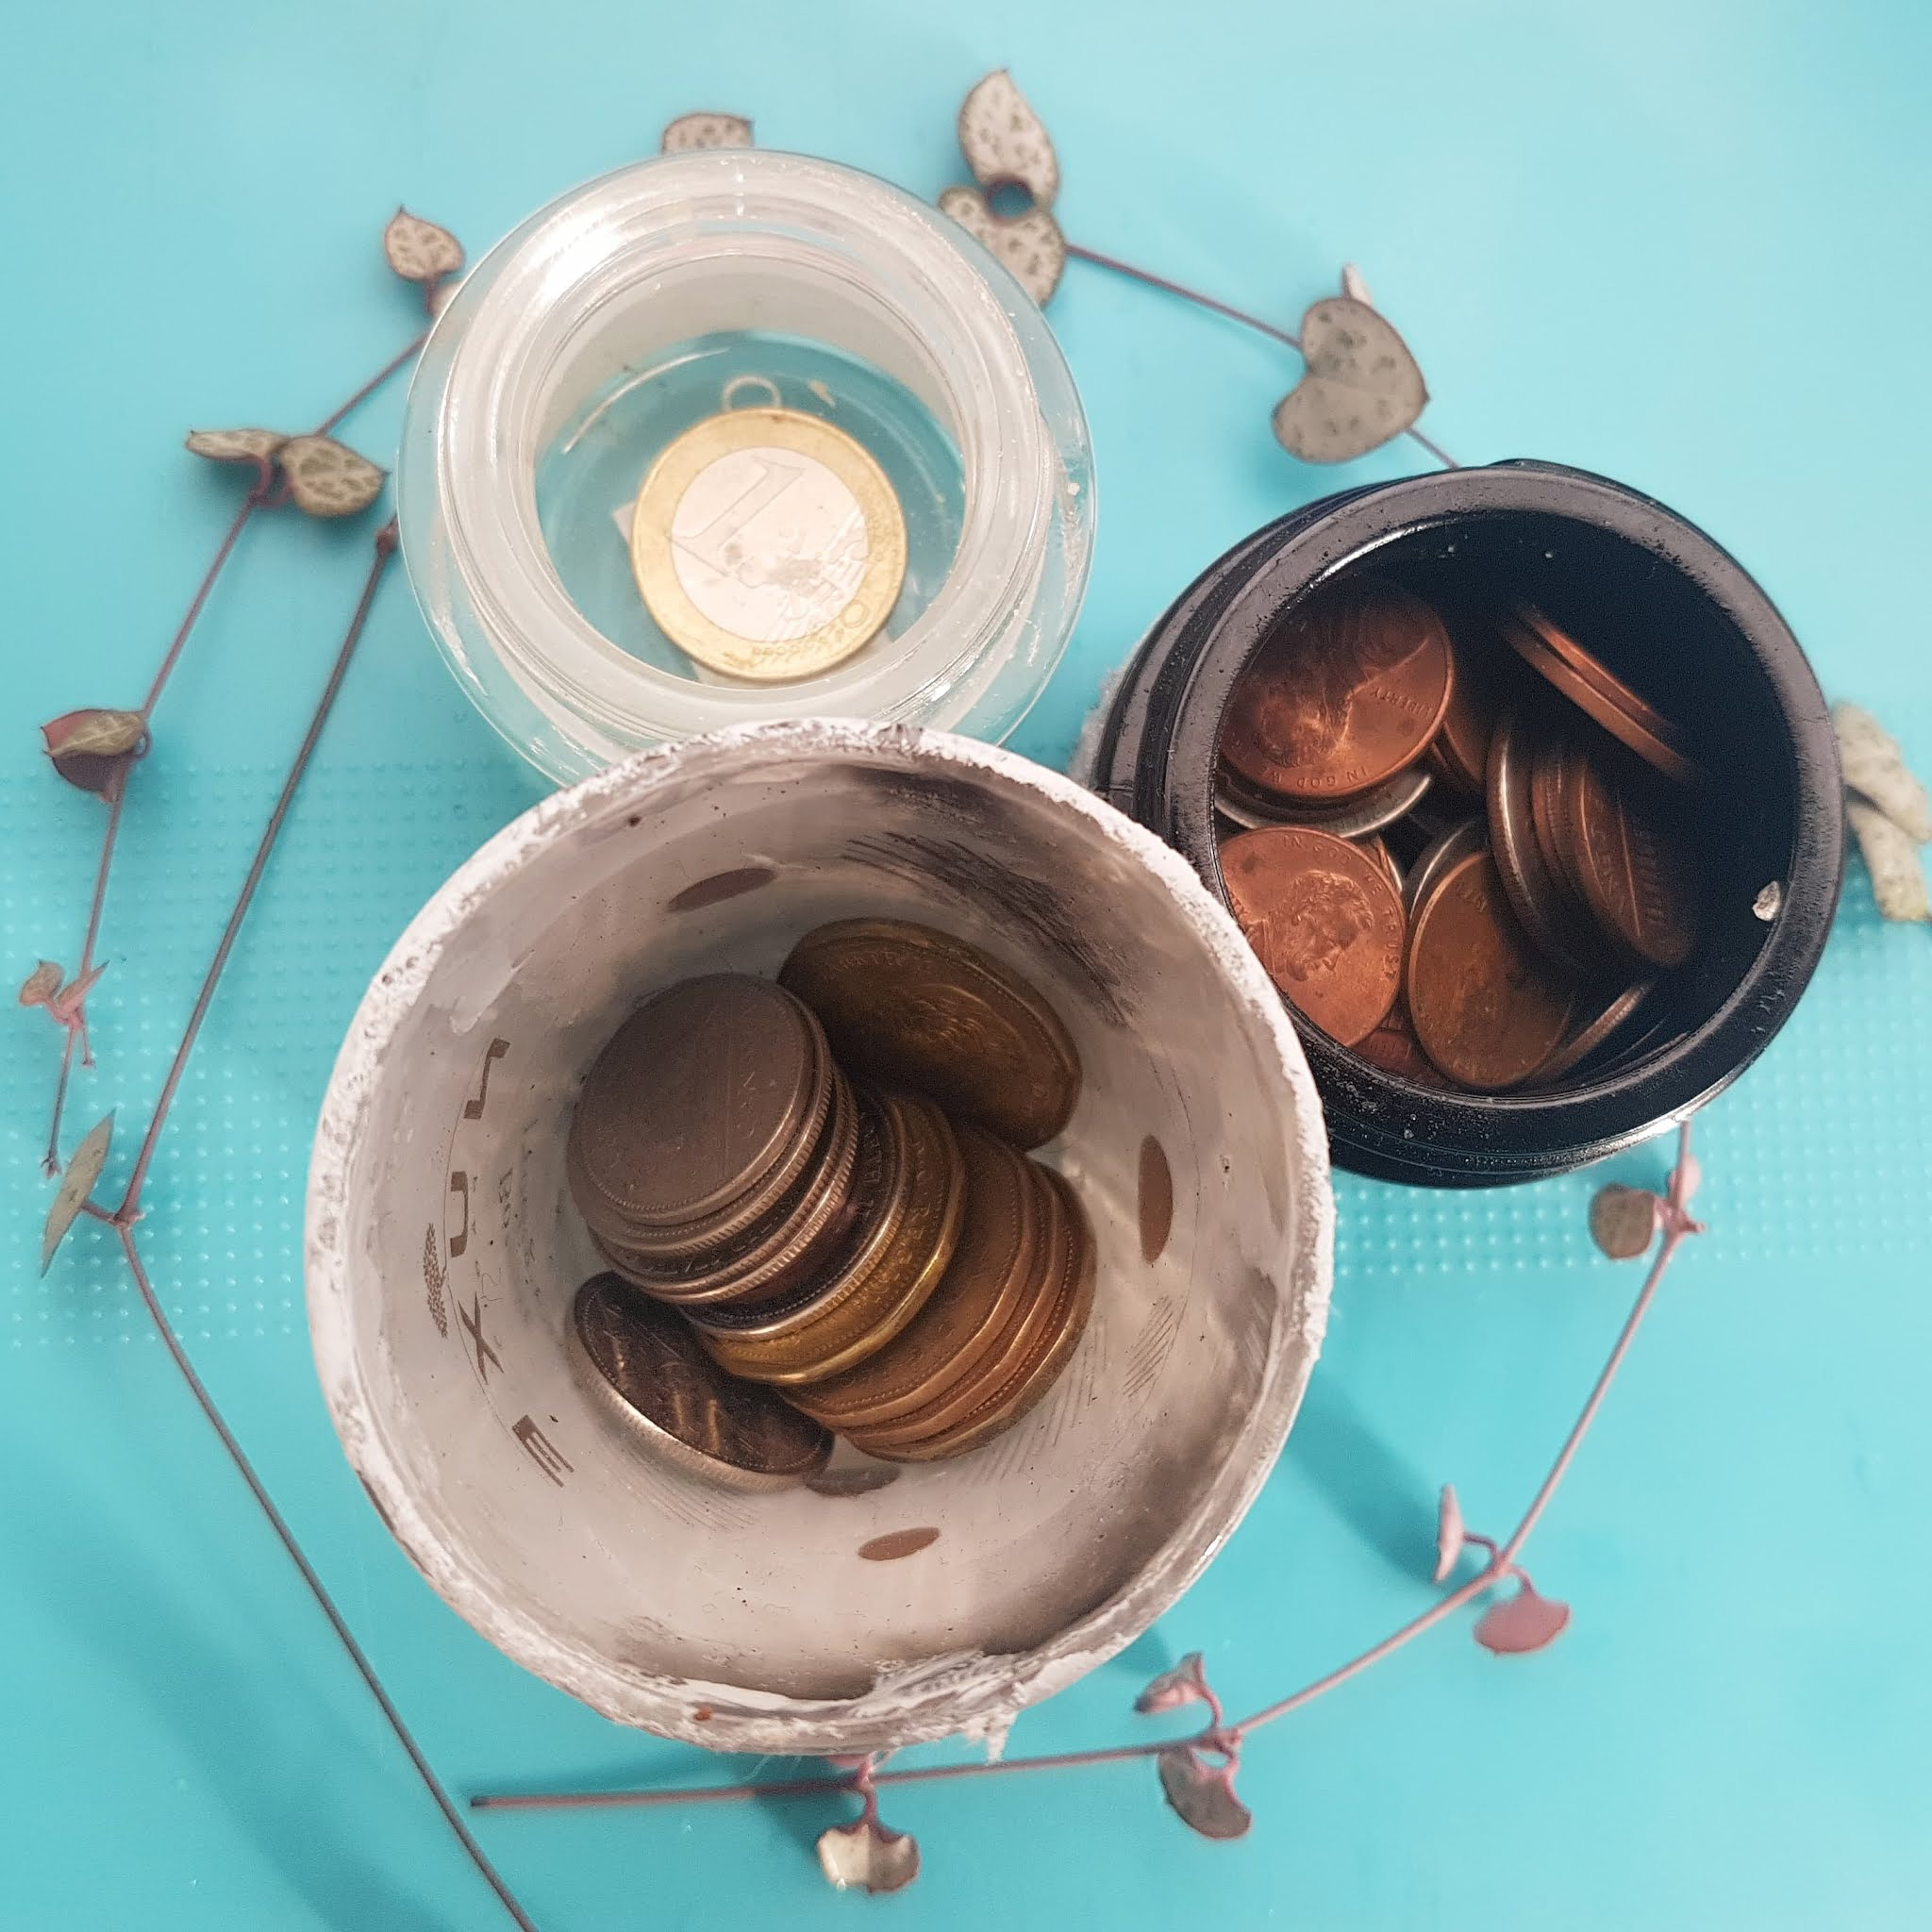 Candle votives repurposed into storage containers, upcycled money holders to separate foreign currencies